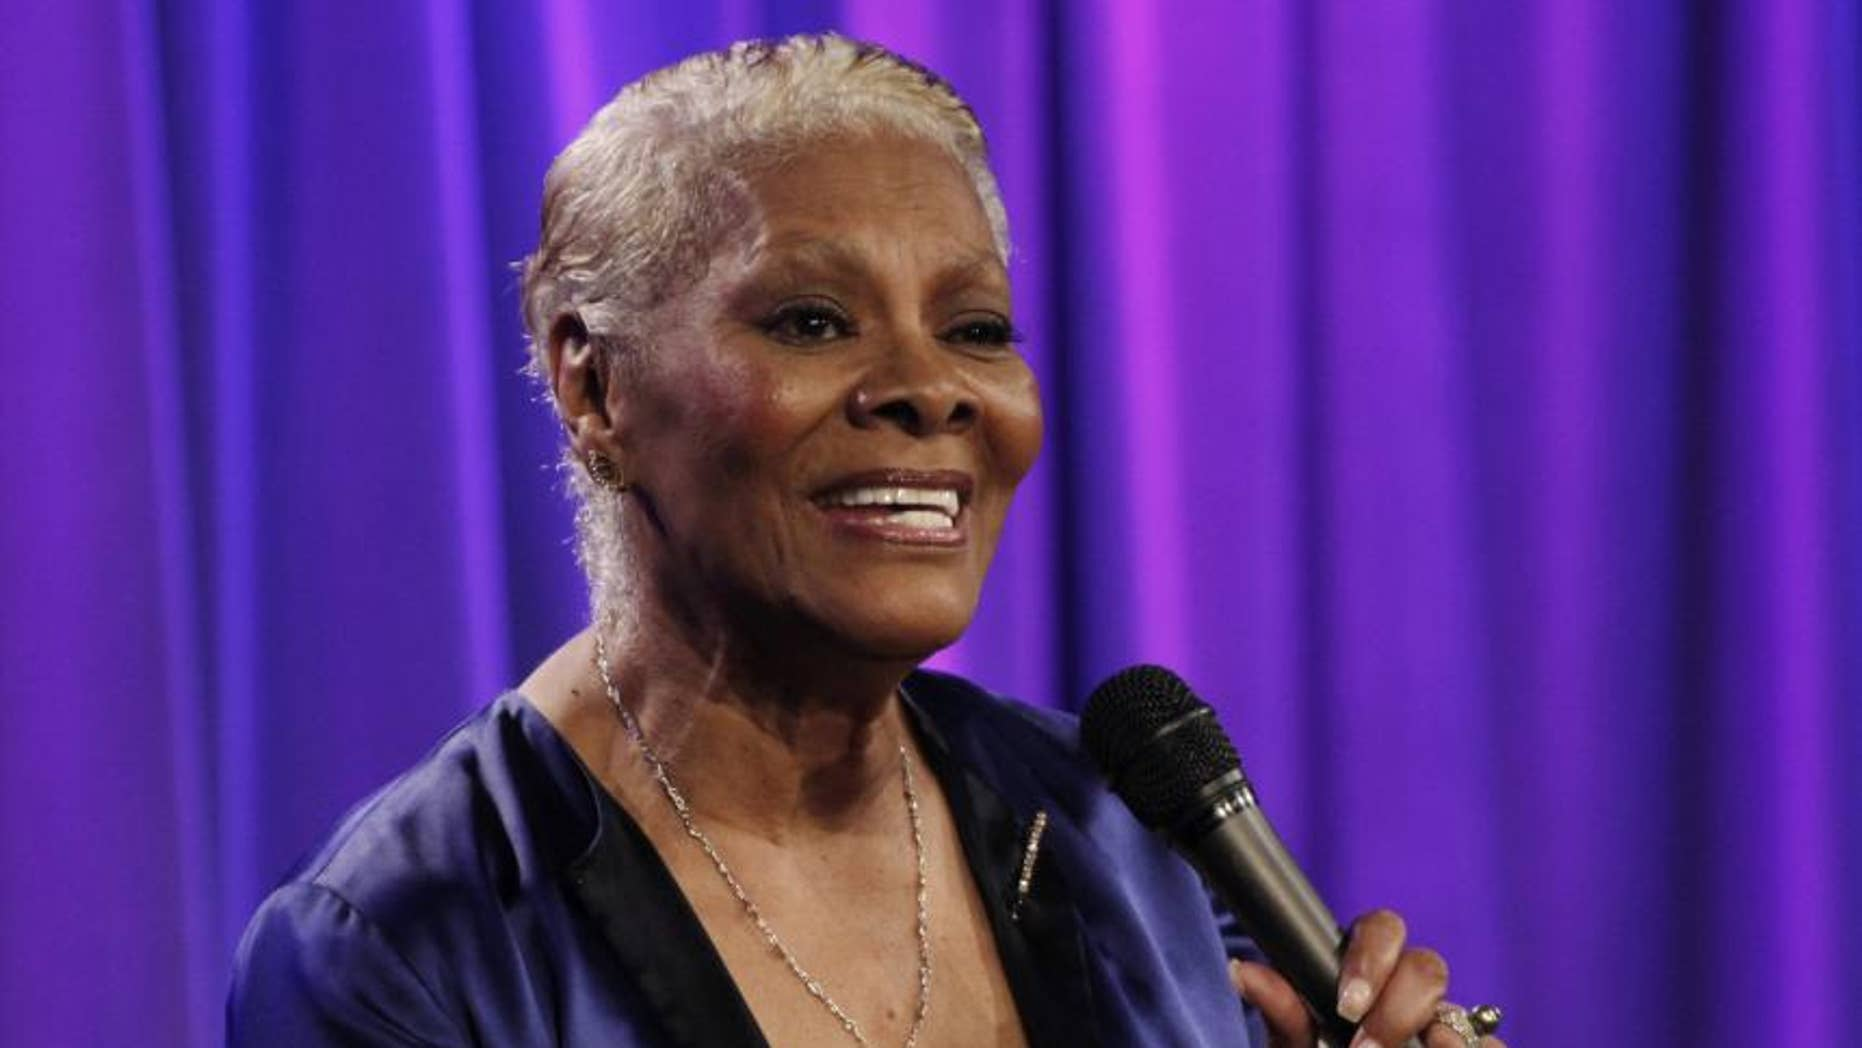 dionne warwick discography download torrent